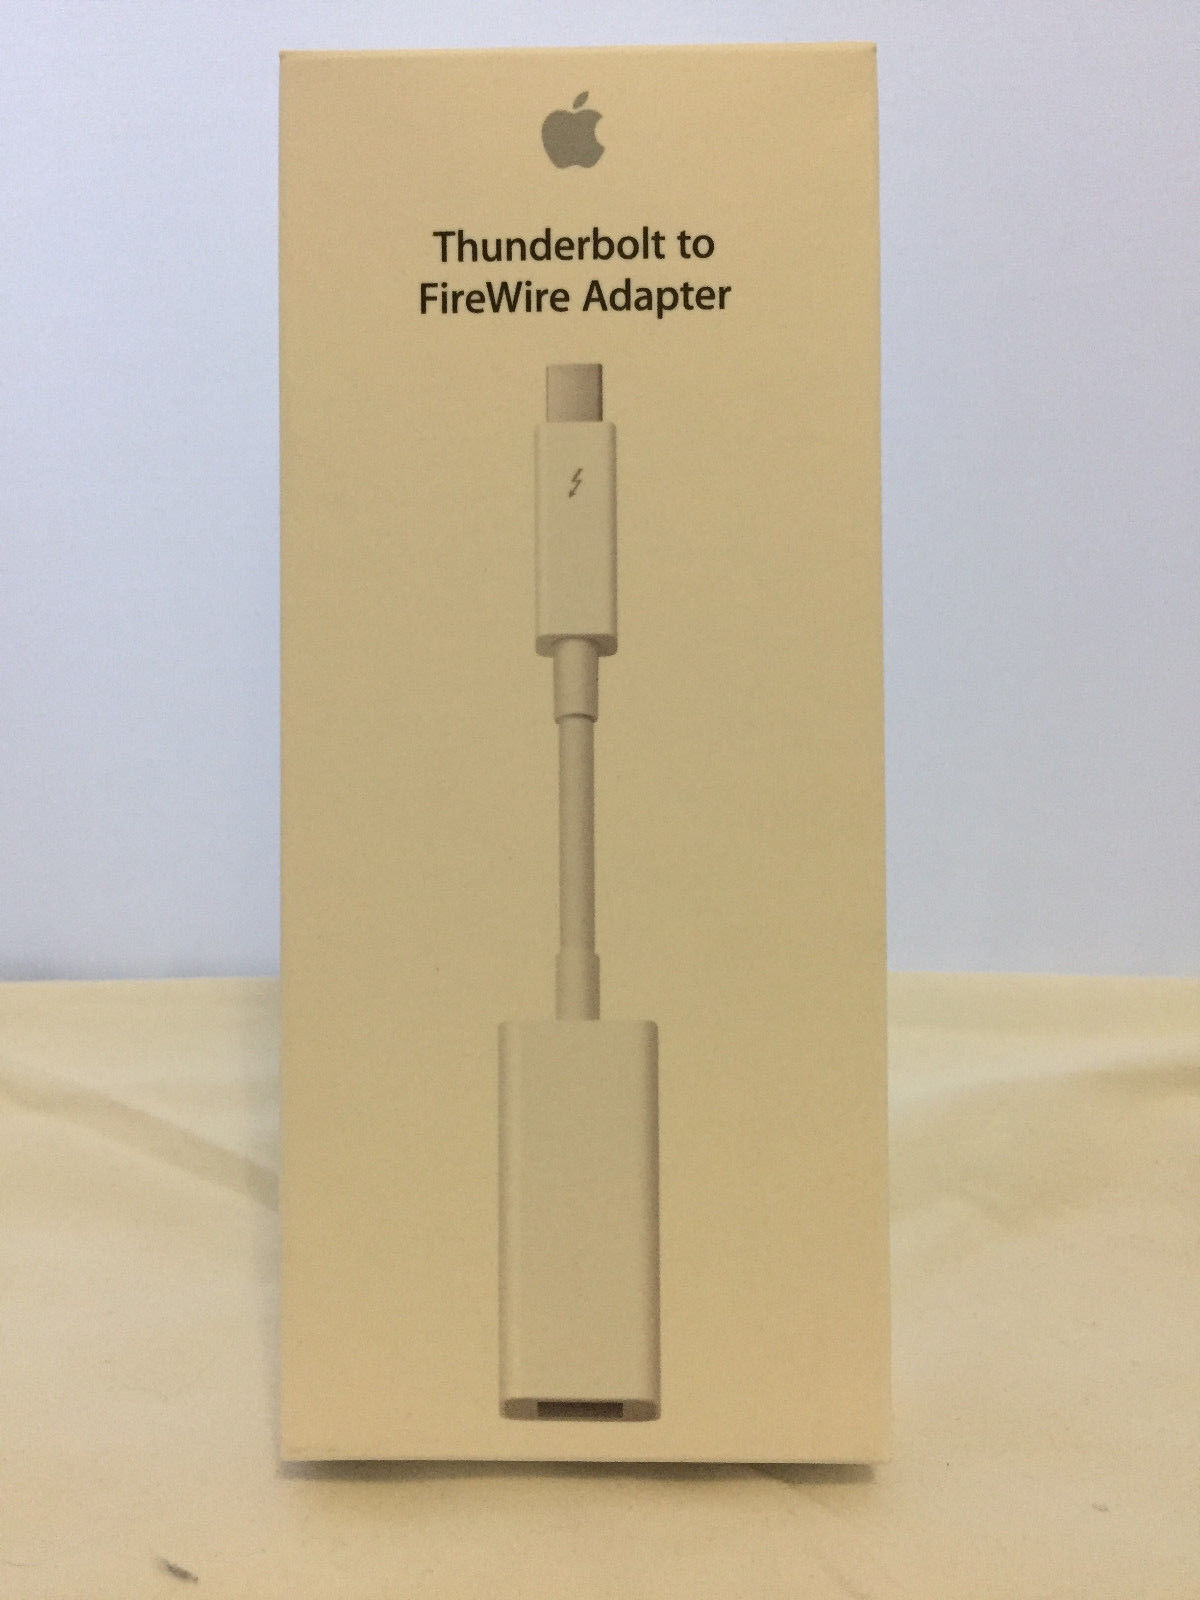 Apple Thunderbolt to FireWire Adapter A1463 | eBay